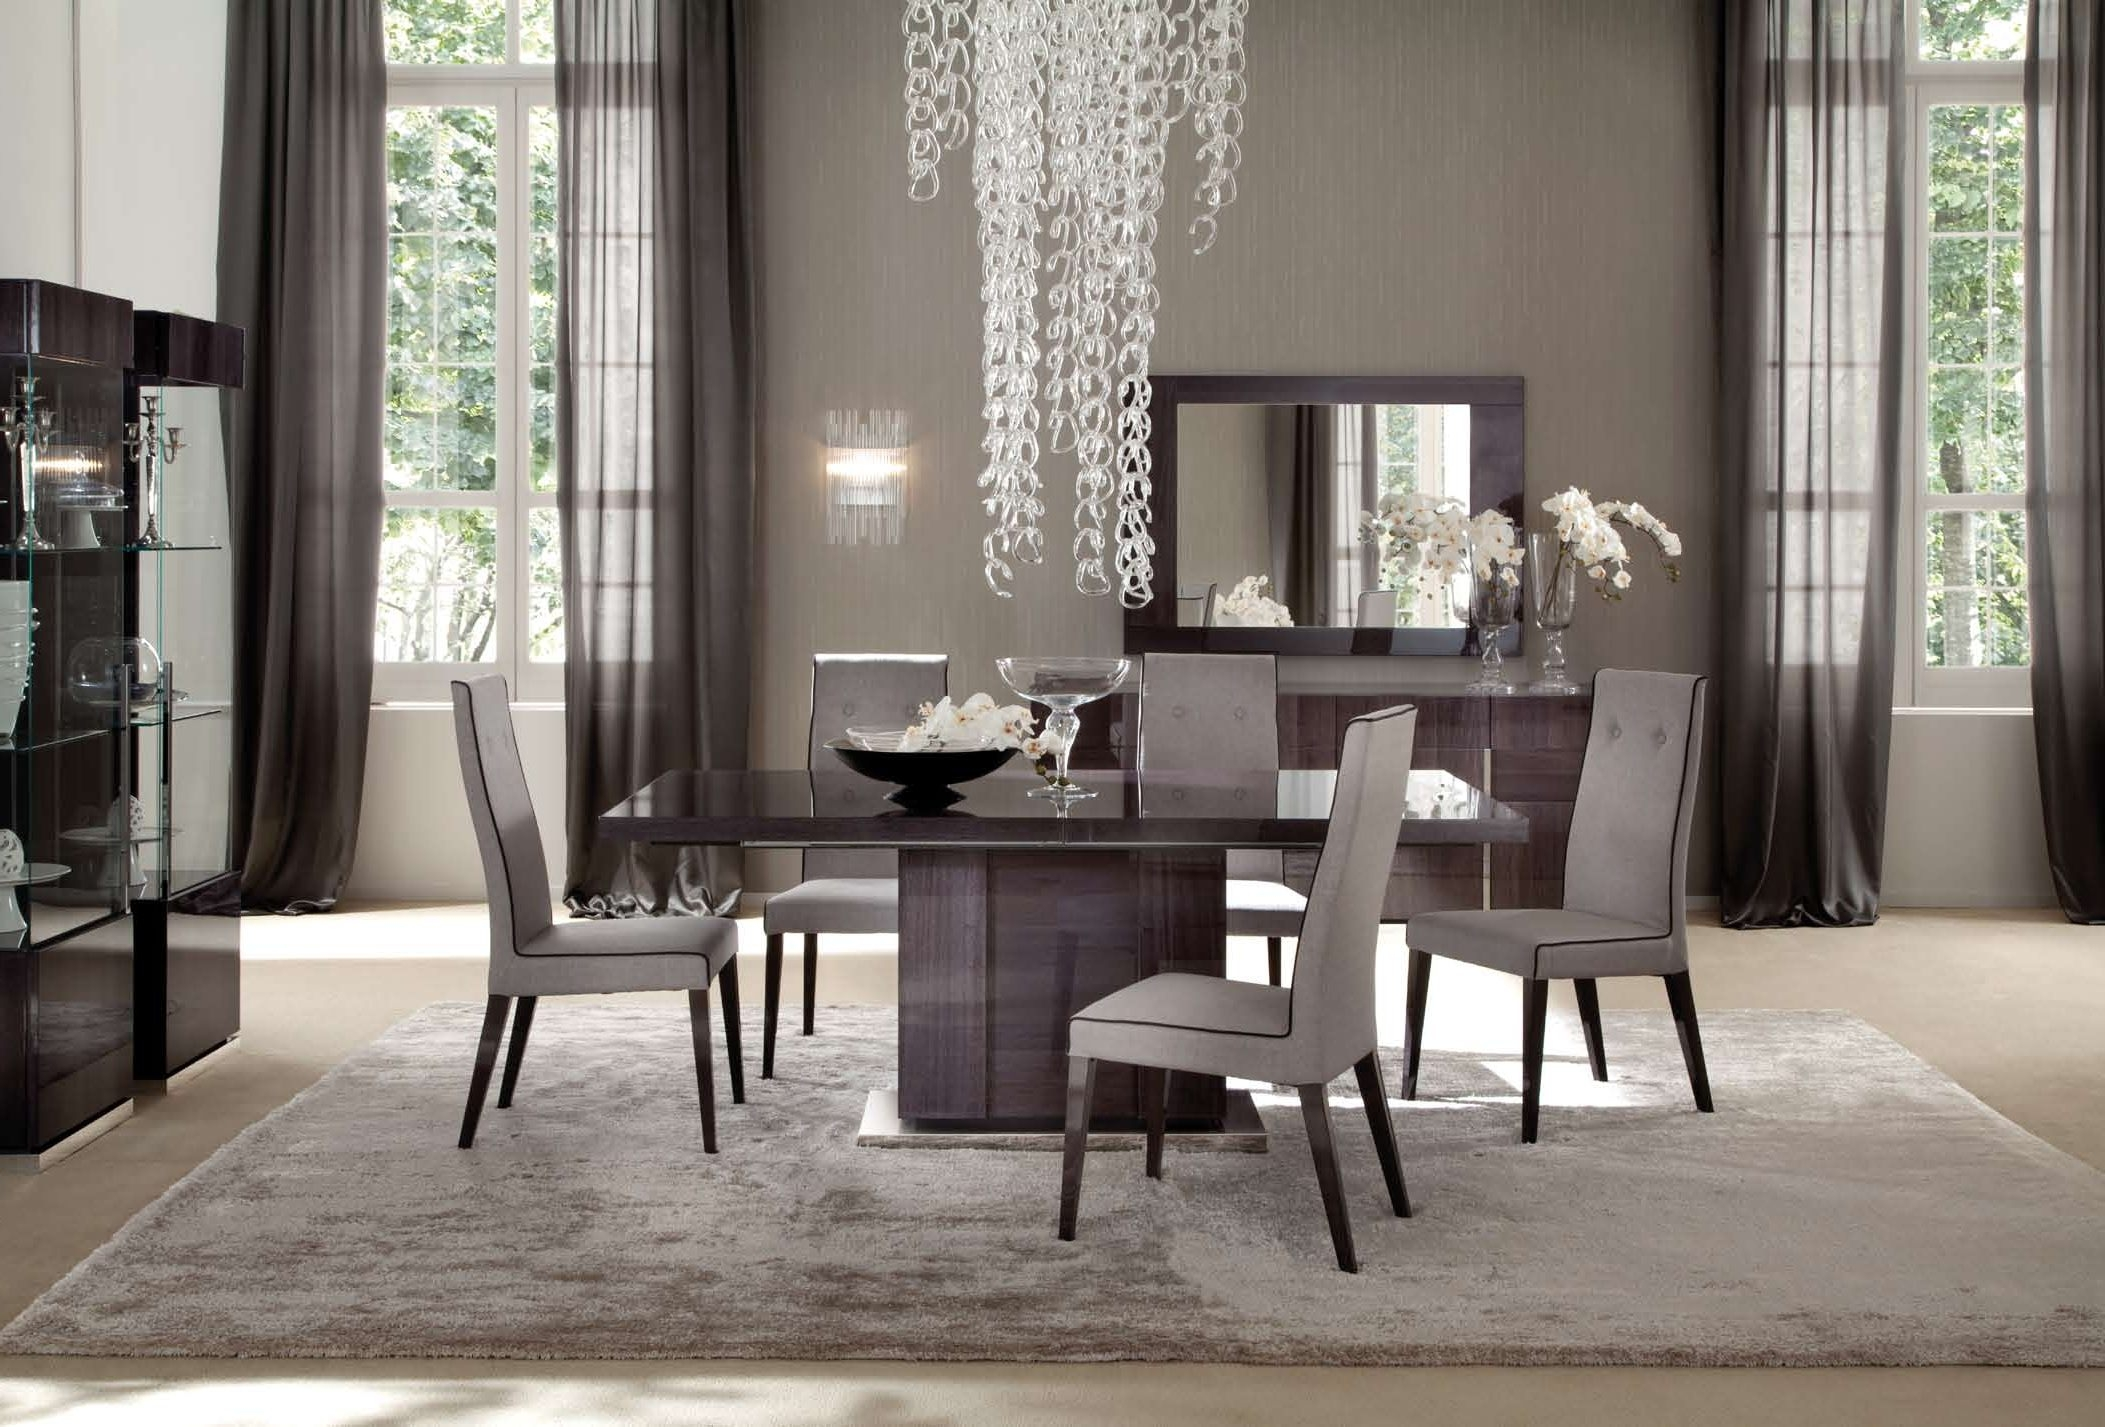 Modern Dining Room Chandeliers Grey Pattern Seat Chairs Armless Within Grey Chandeliers (Image 24 of 25)